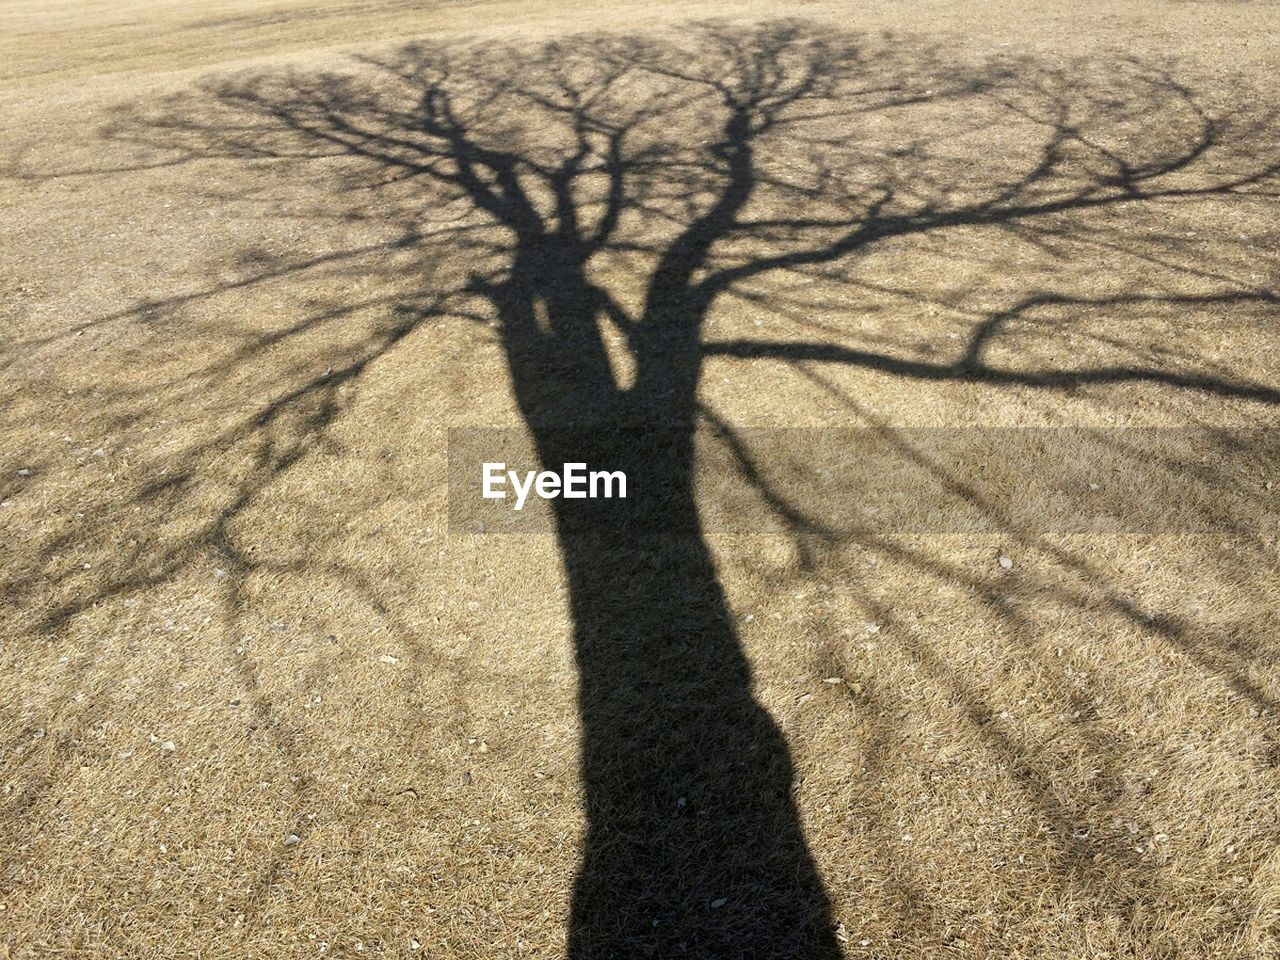 shadow, focus on shadow, sunlight, nature, bare tree, arid climate, tree, outdoors, desert, day, landscape, sand, branch, no people, sand dune, beauty in nature